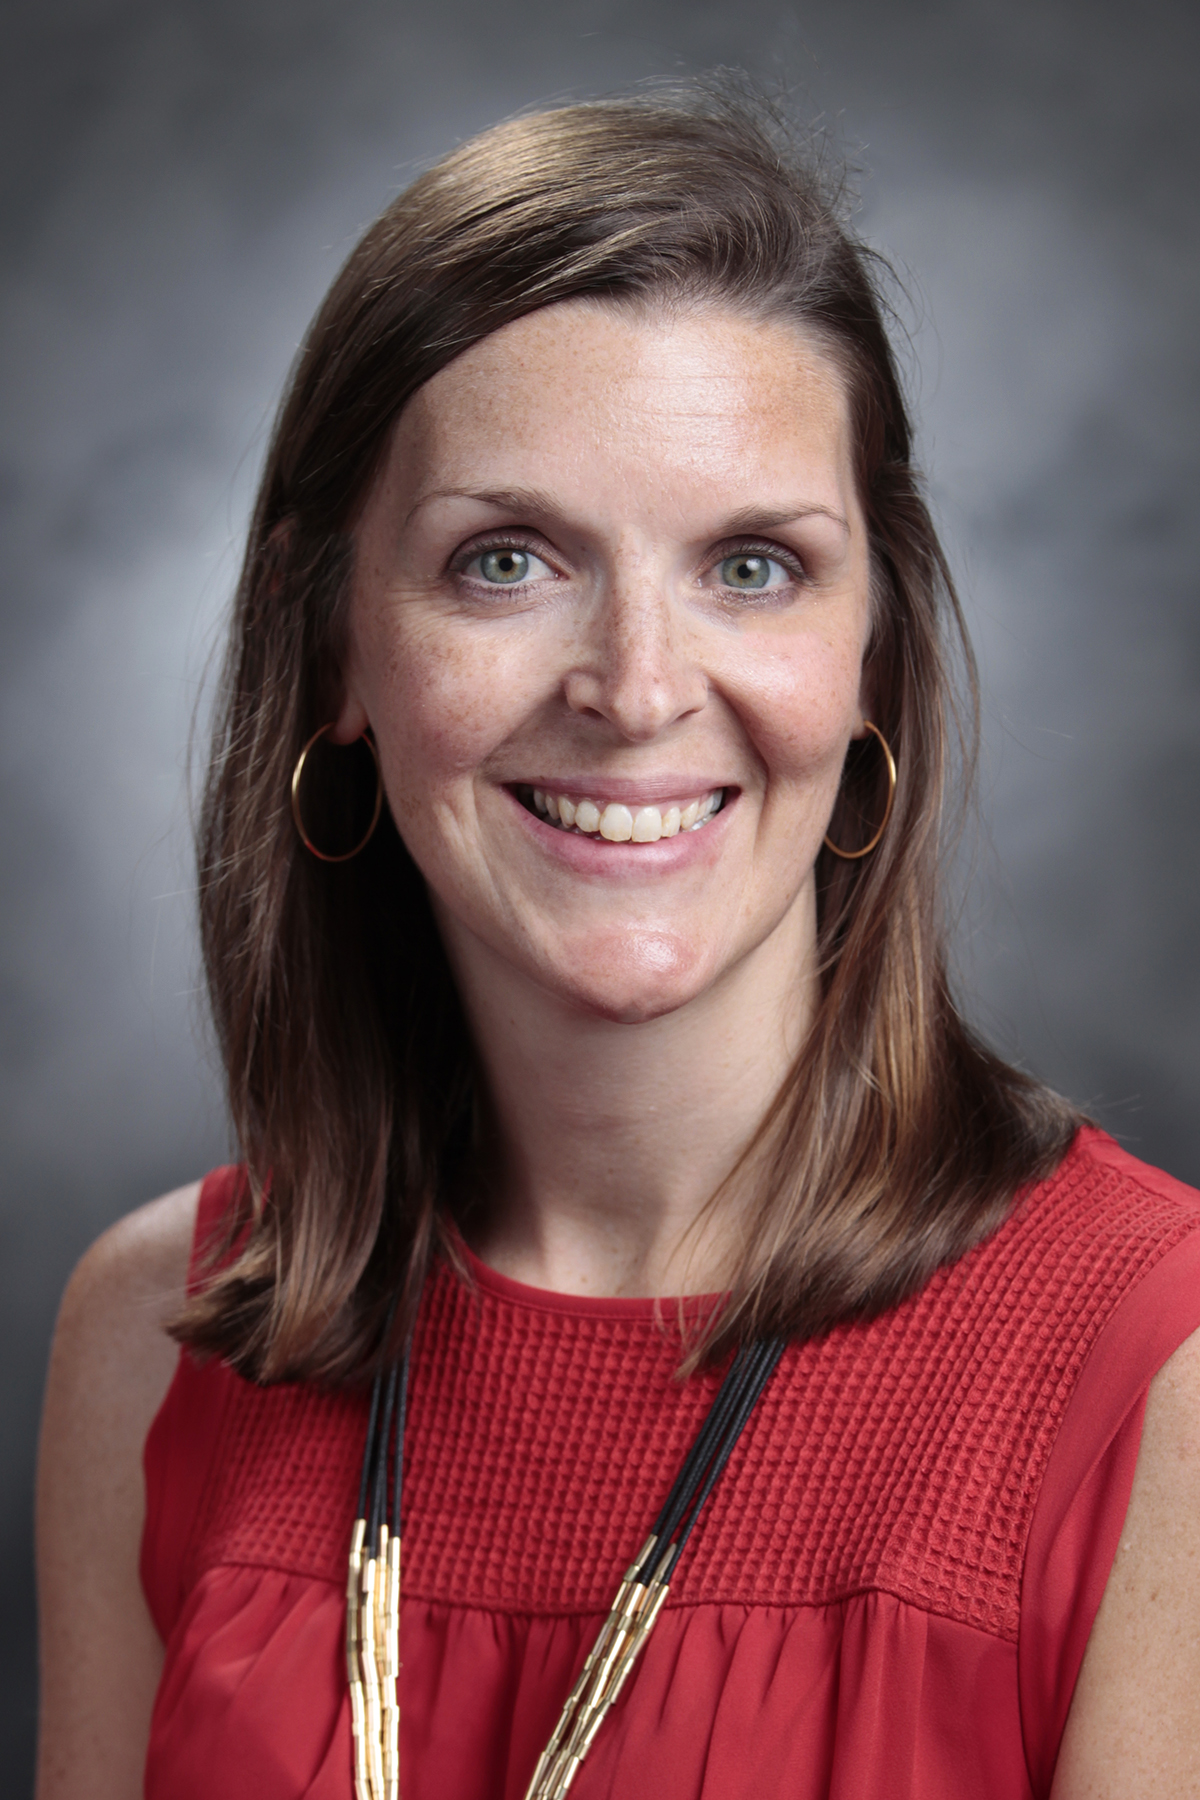 Photo of Jennifer K. Allen, Ph.D.